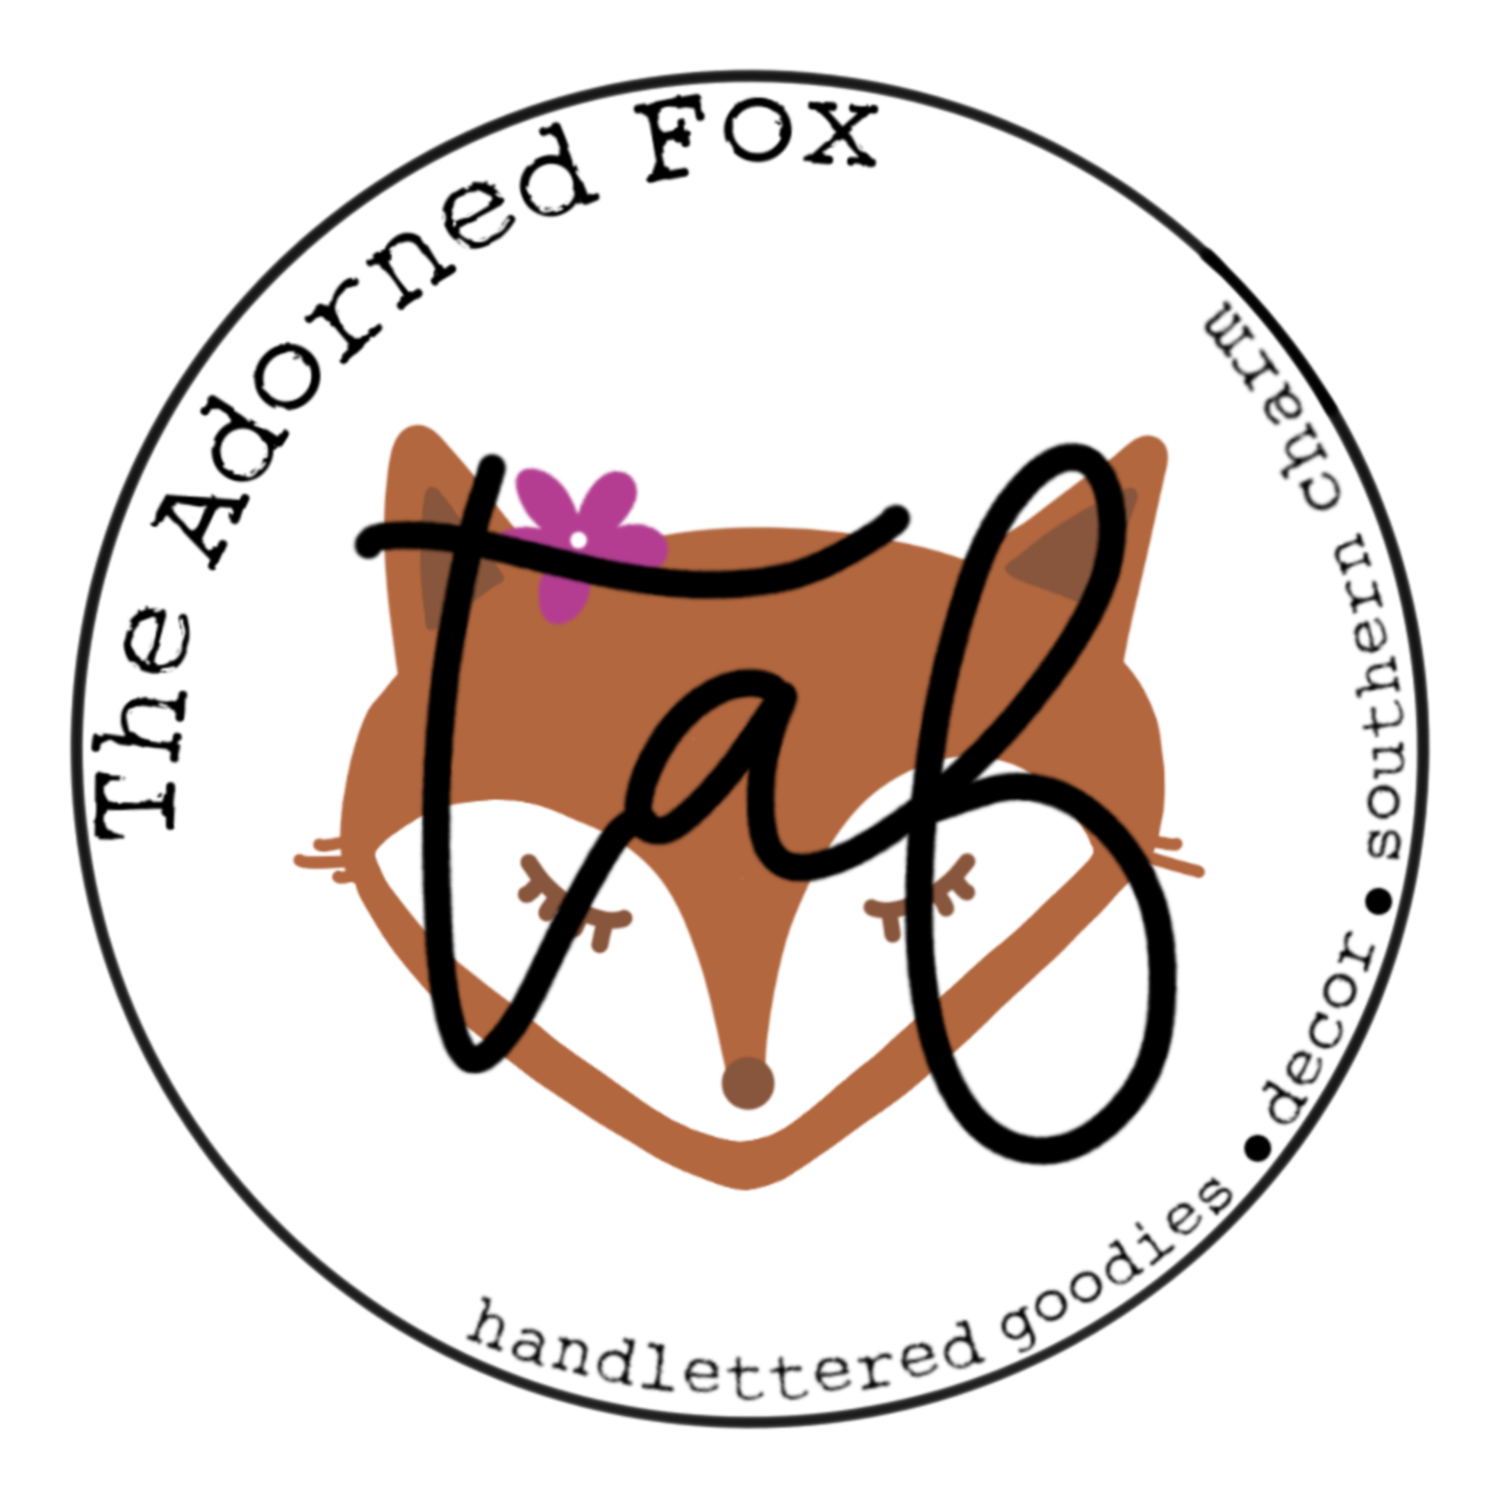 Rustic heart png. The adorned fox